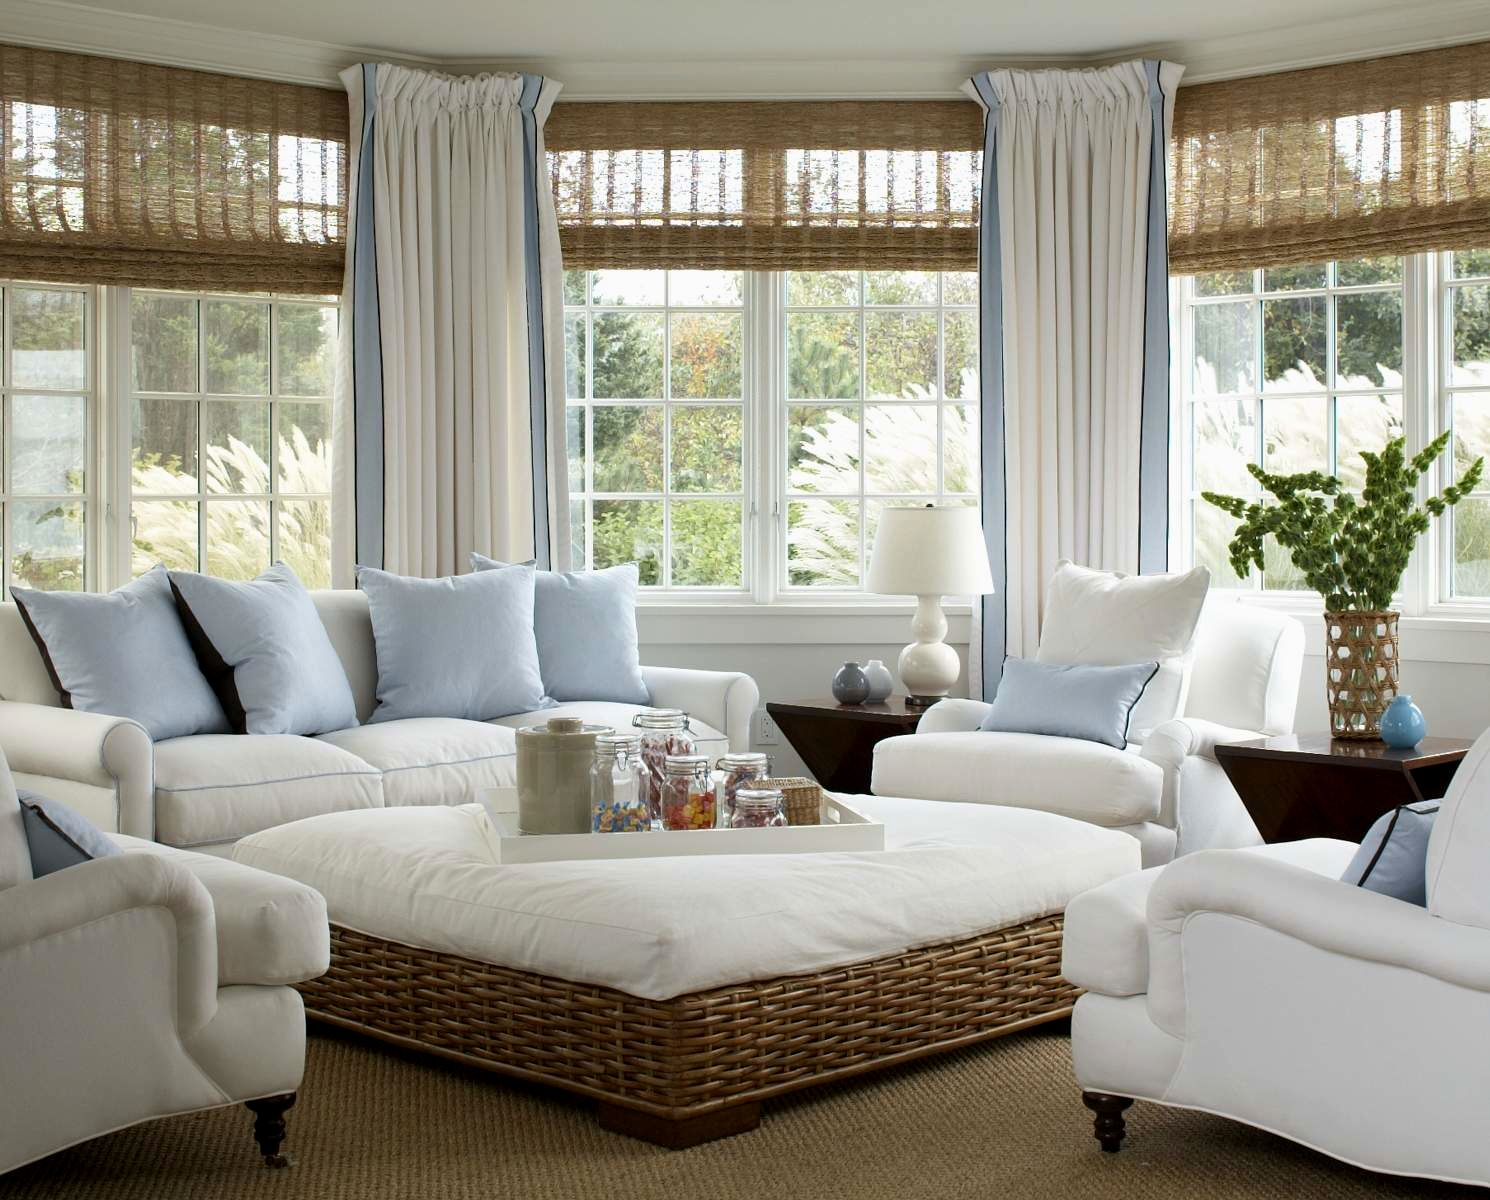 luxury sectional sofas for sale pattern-Excellent Sectional sofas for Sale Wallpaper